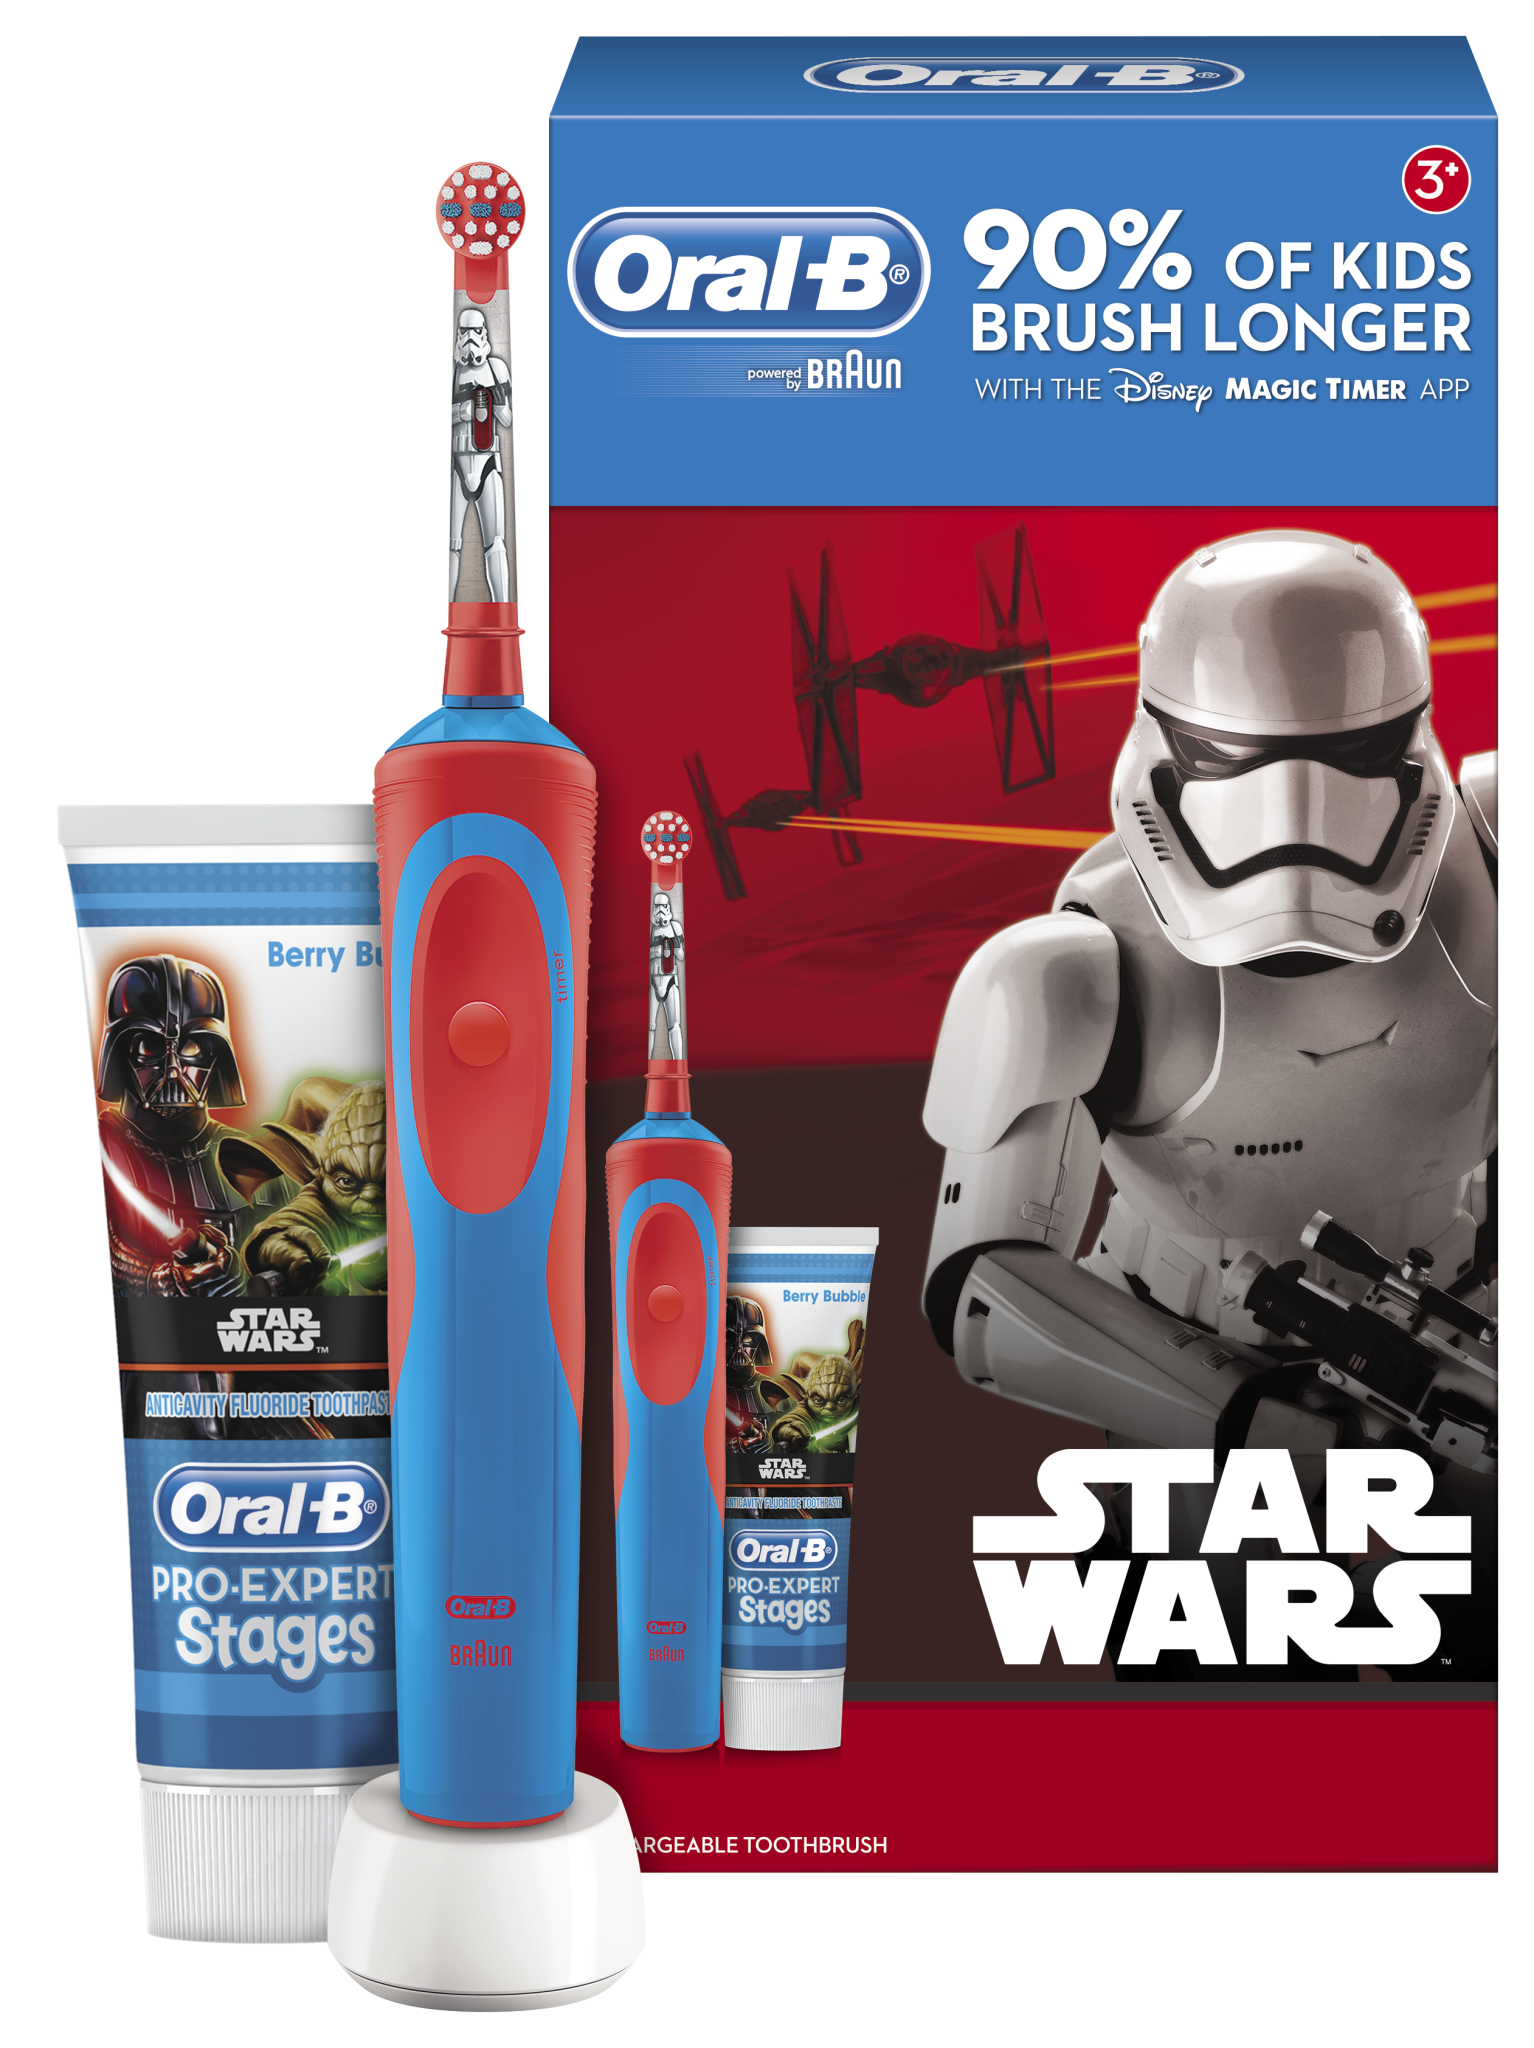 Star Wars Themed Oral B Electric Toothbrush Review Gift Idea Oral Cepillo Bebe